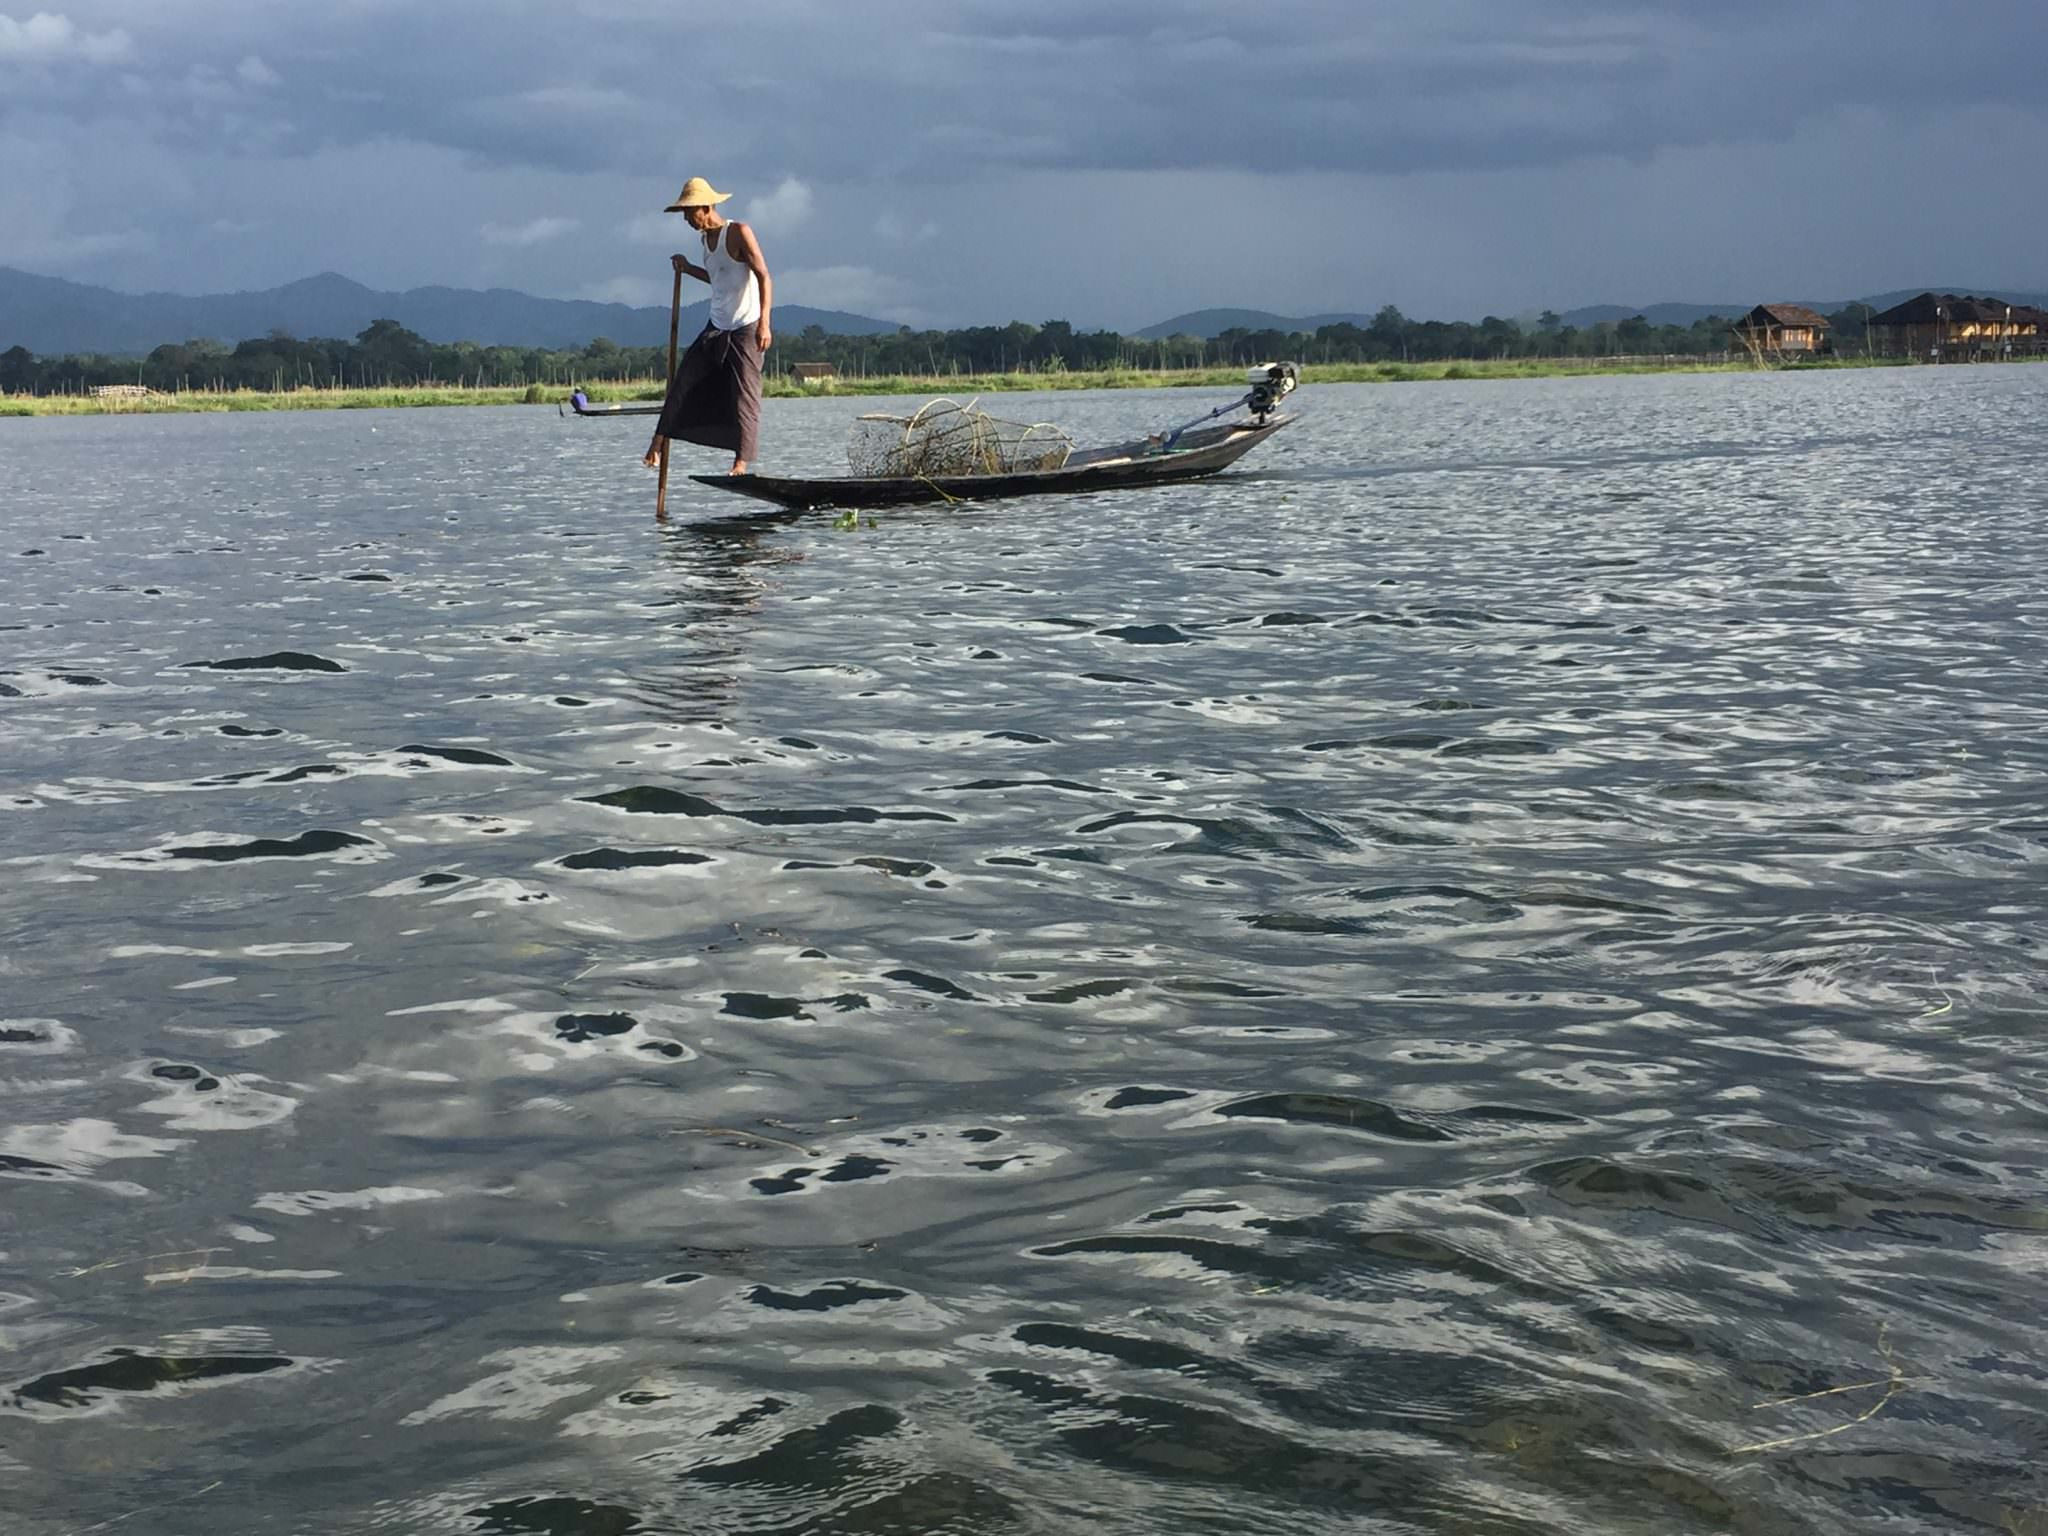 Wearing a traditional longhi around his waist, this fisherman paddles with his boat with his right foot. © 2015 Gail Jessen